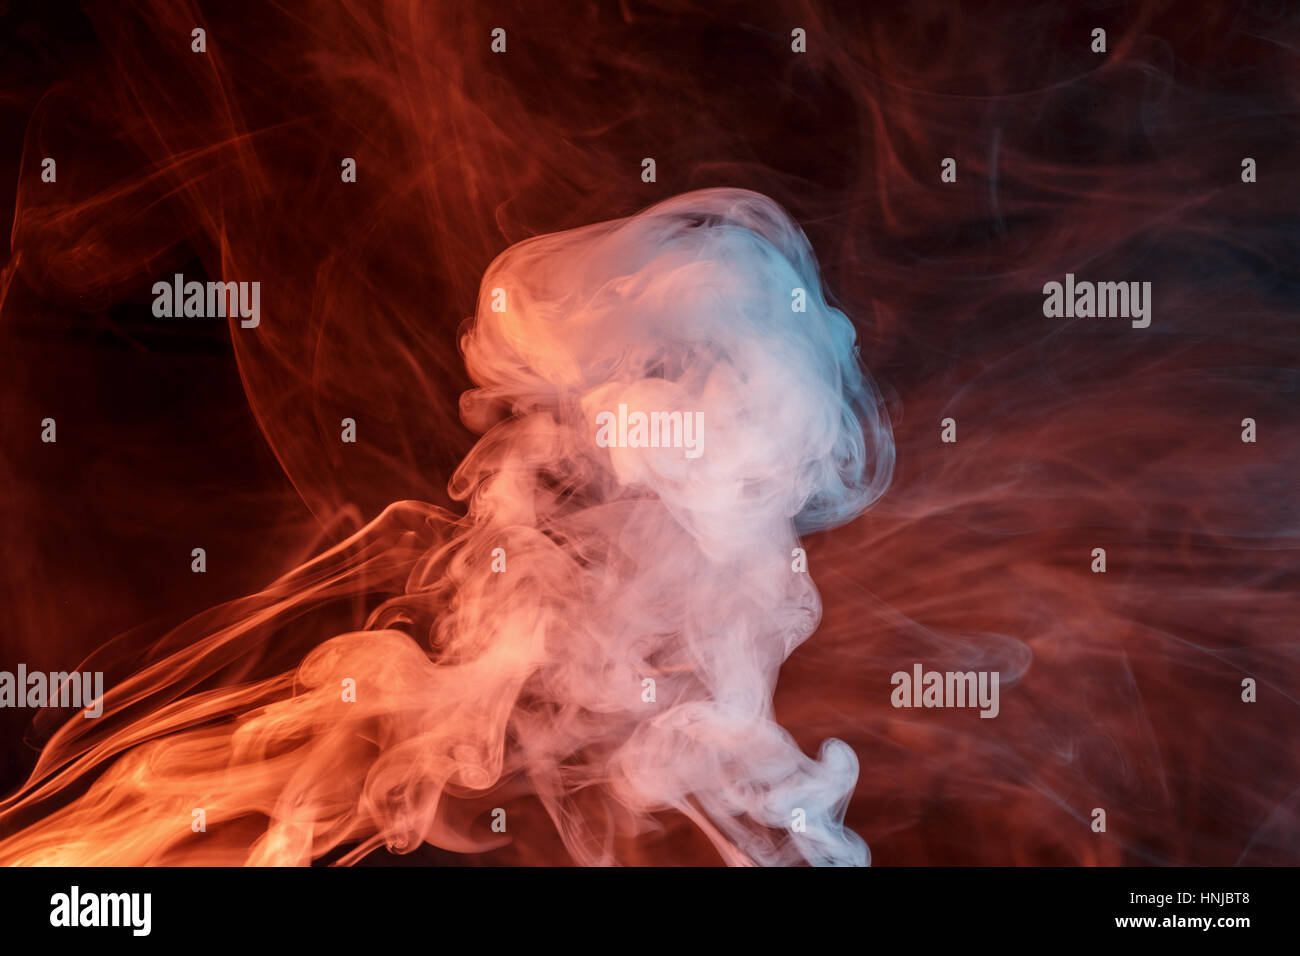 Abstract smoke Weipa. Personal vaporizers fragrant steam. The concept of alternative non-nicotine smoking. Orange - Stock Image